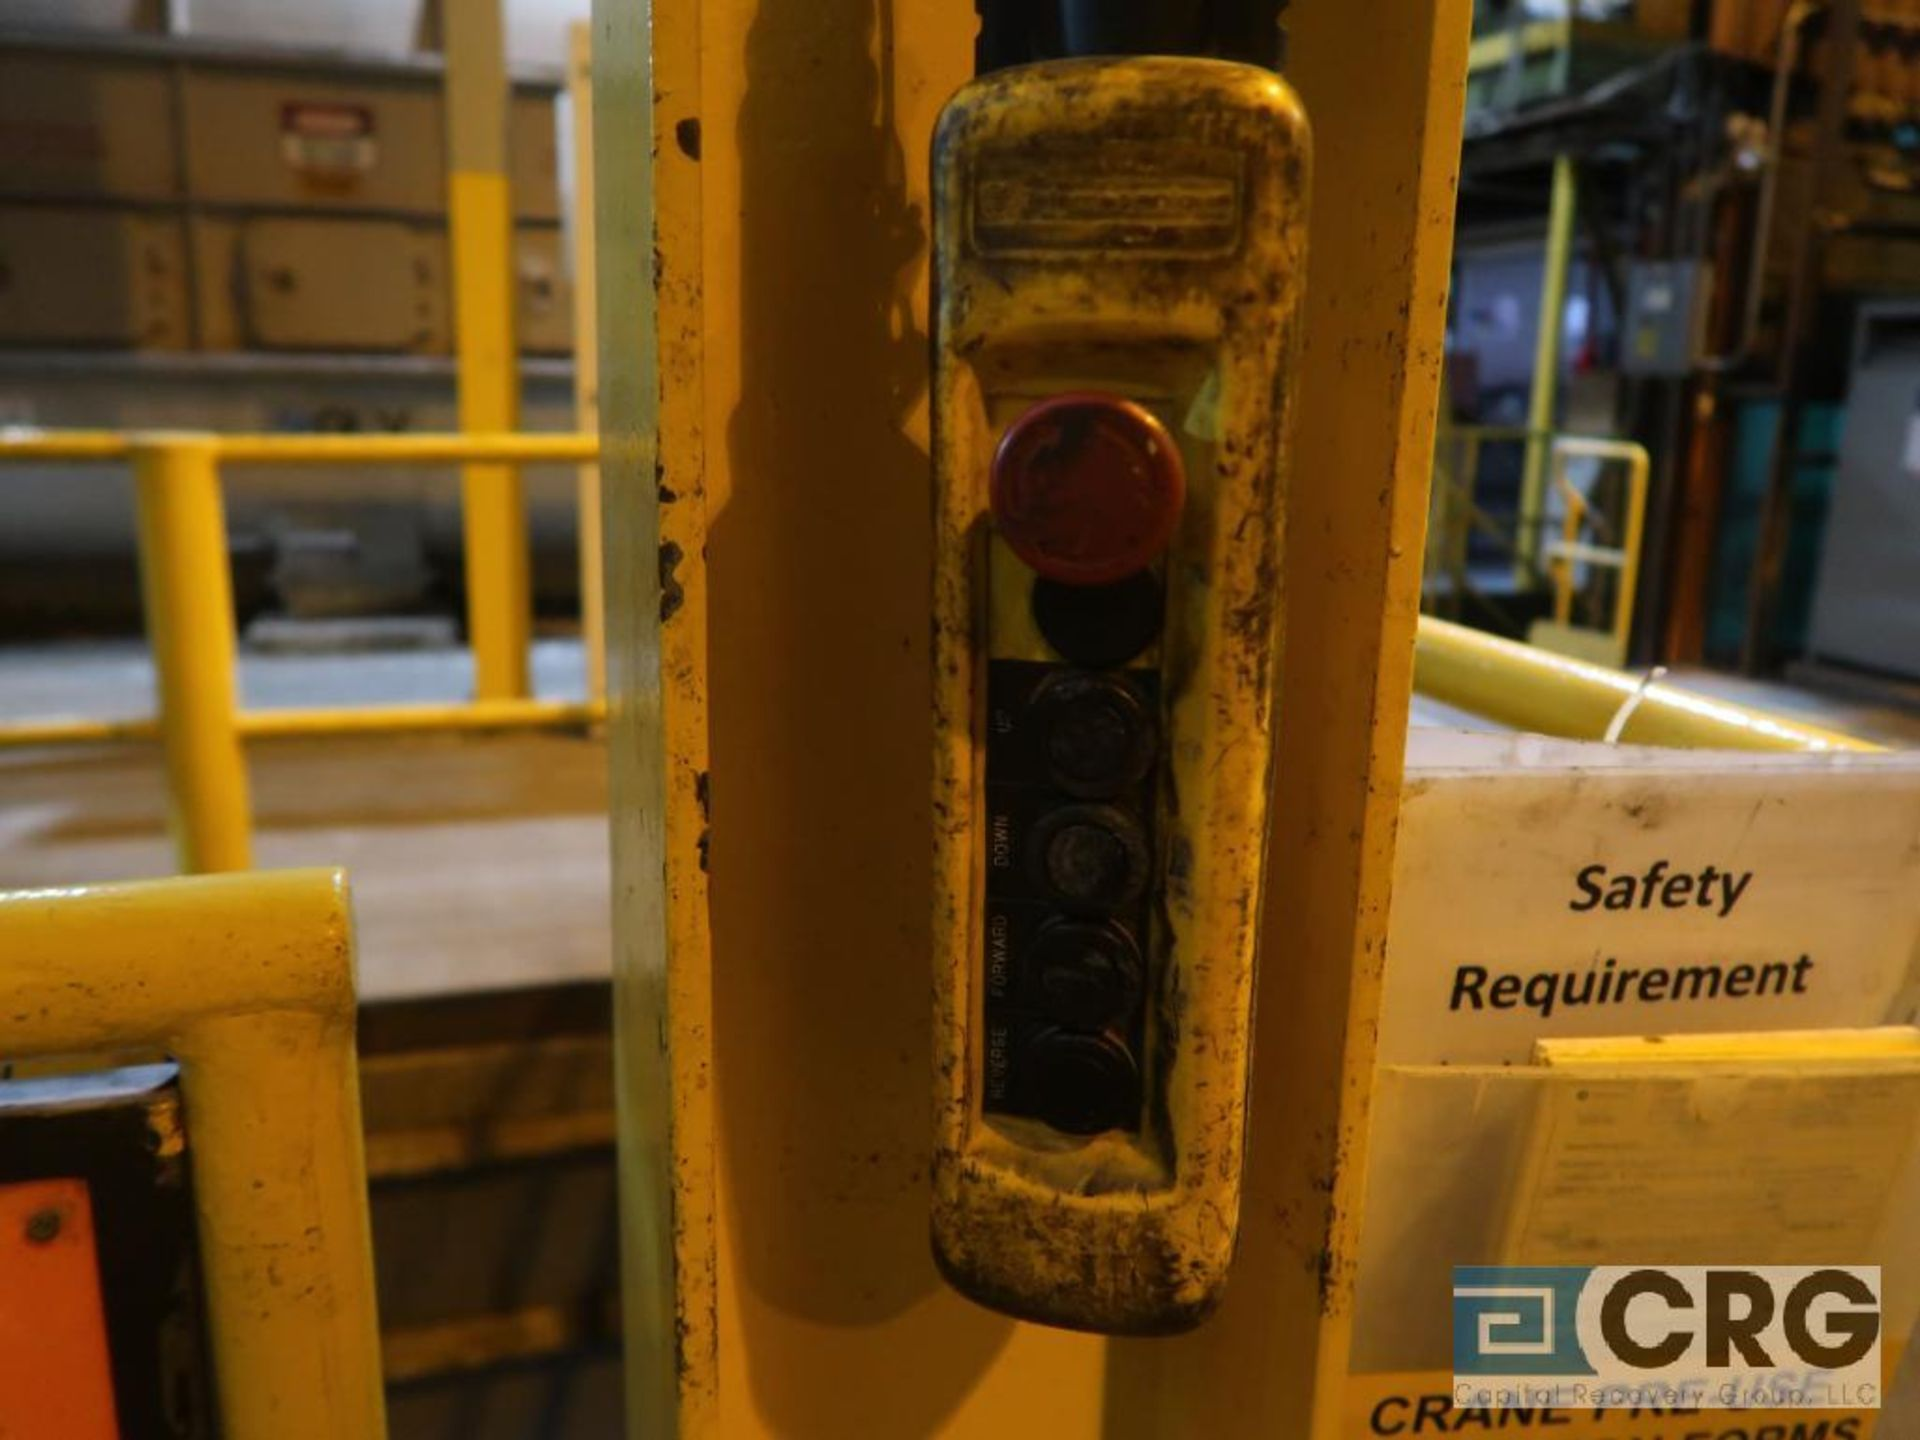 Konecranes XN25 electric hoist, 3 ton cap., hoist only, no beam-LATE DELIVERY (Located on Level - Image 3 of 12